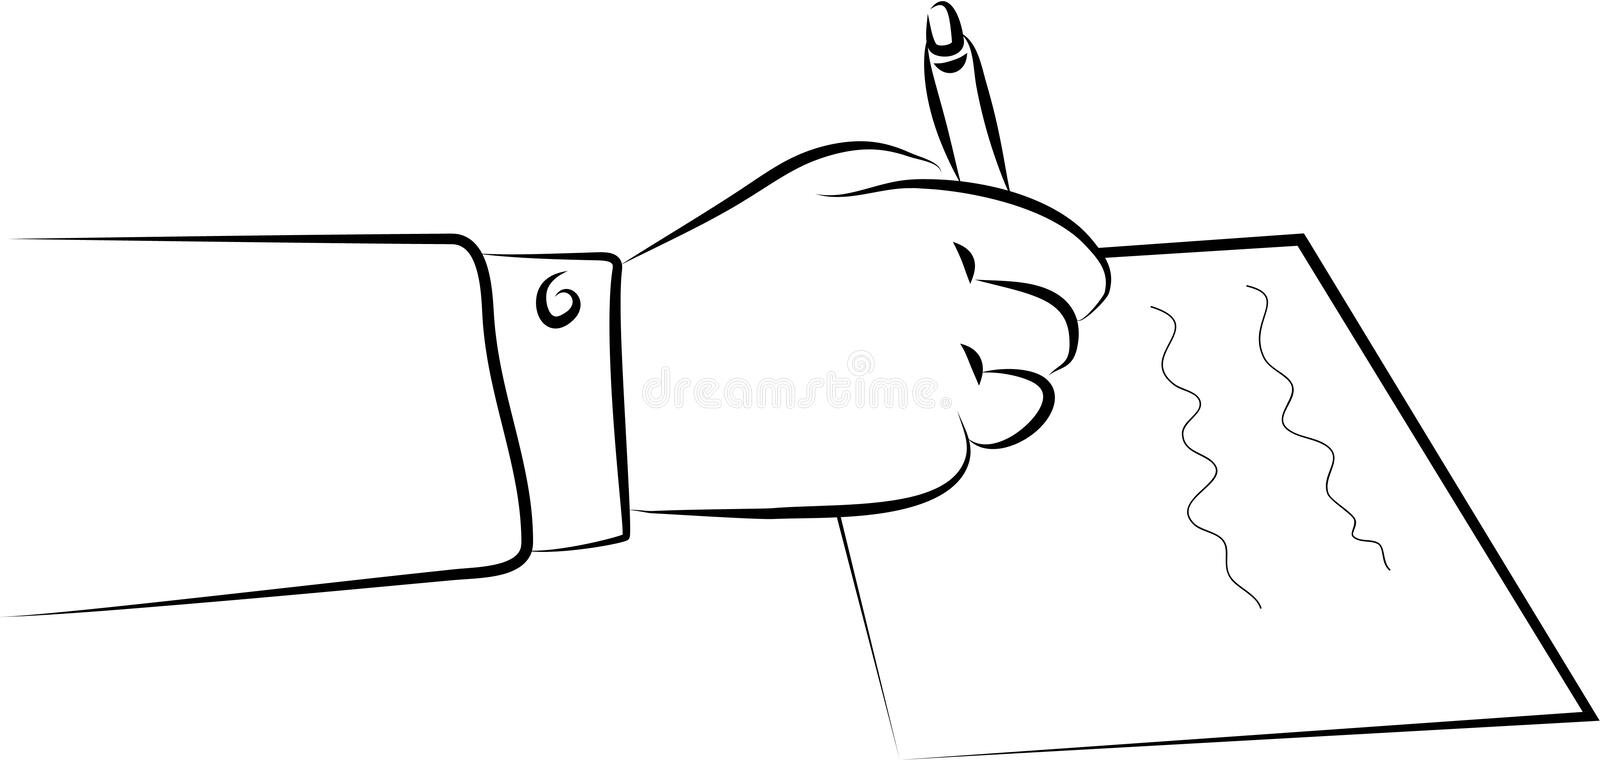 Signing a document vector illustration